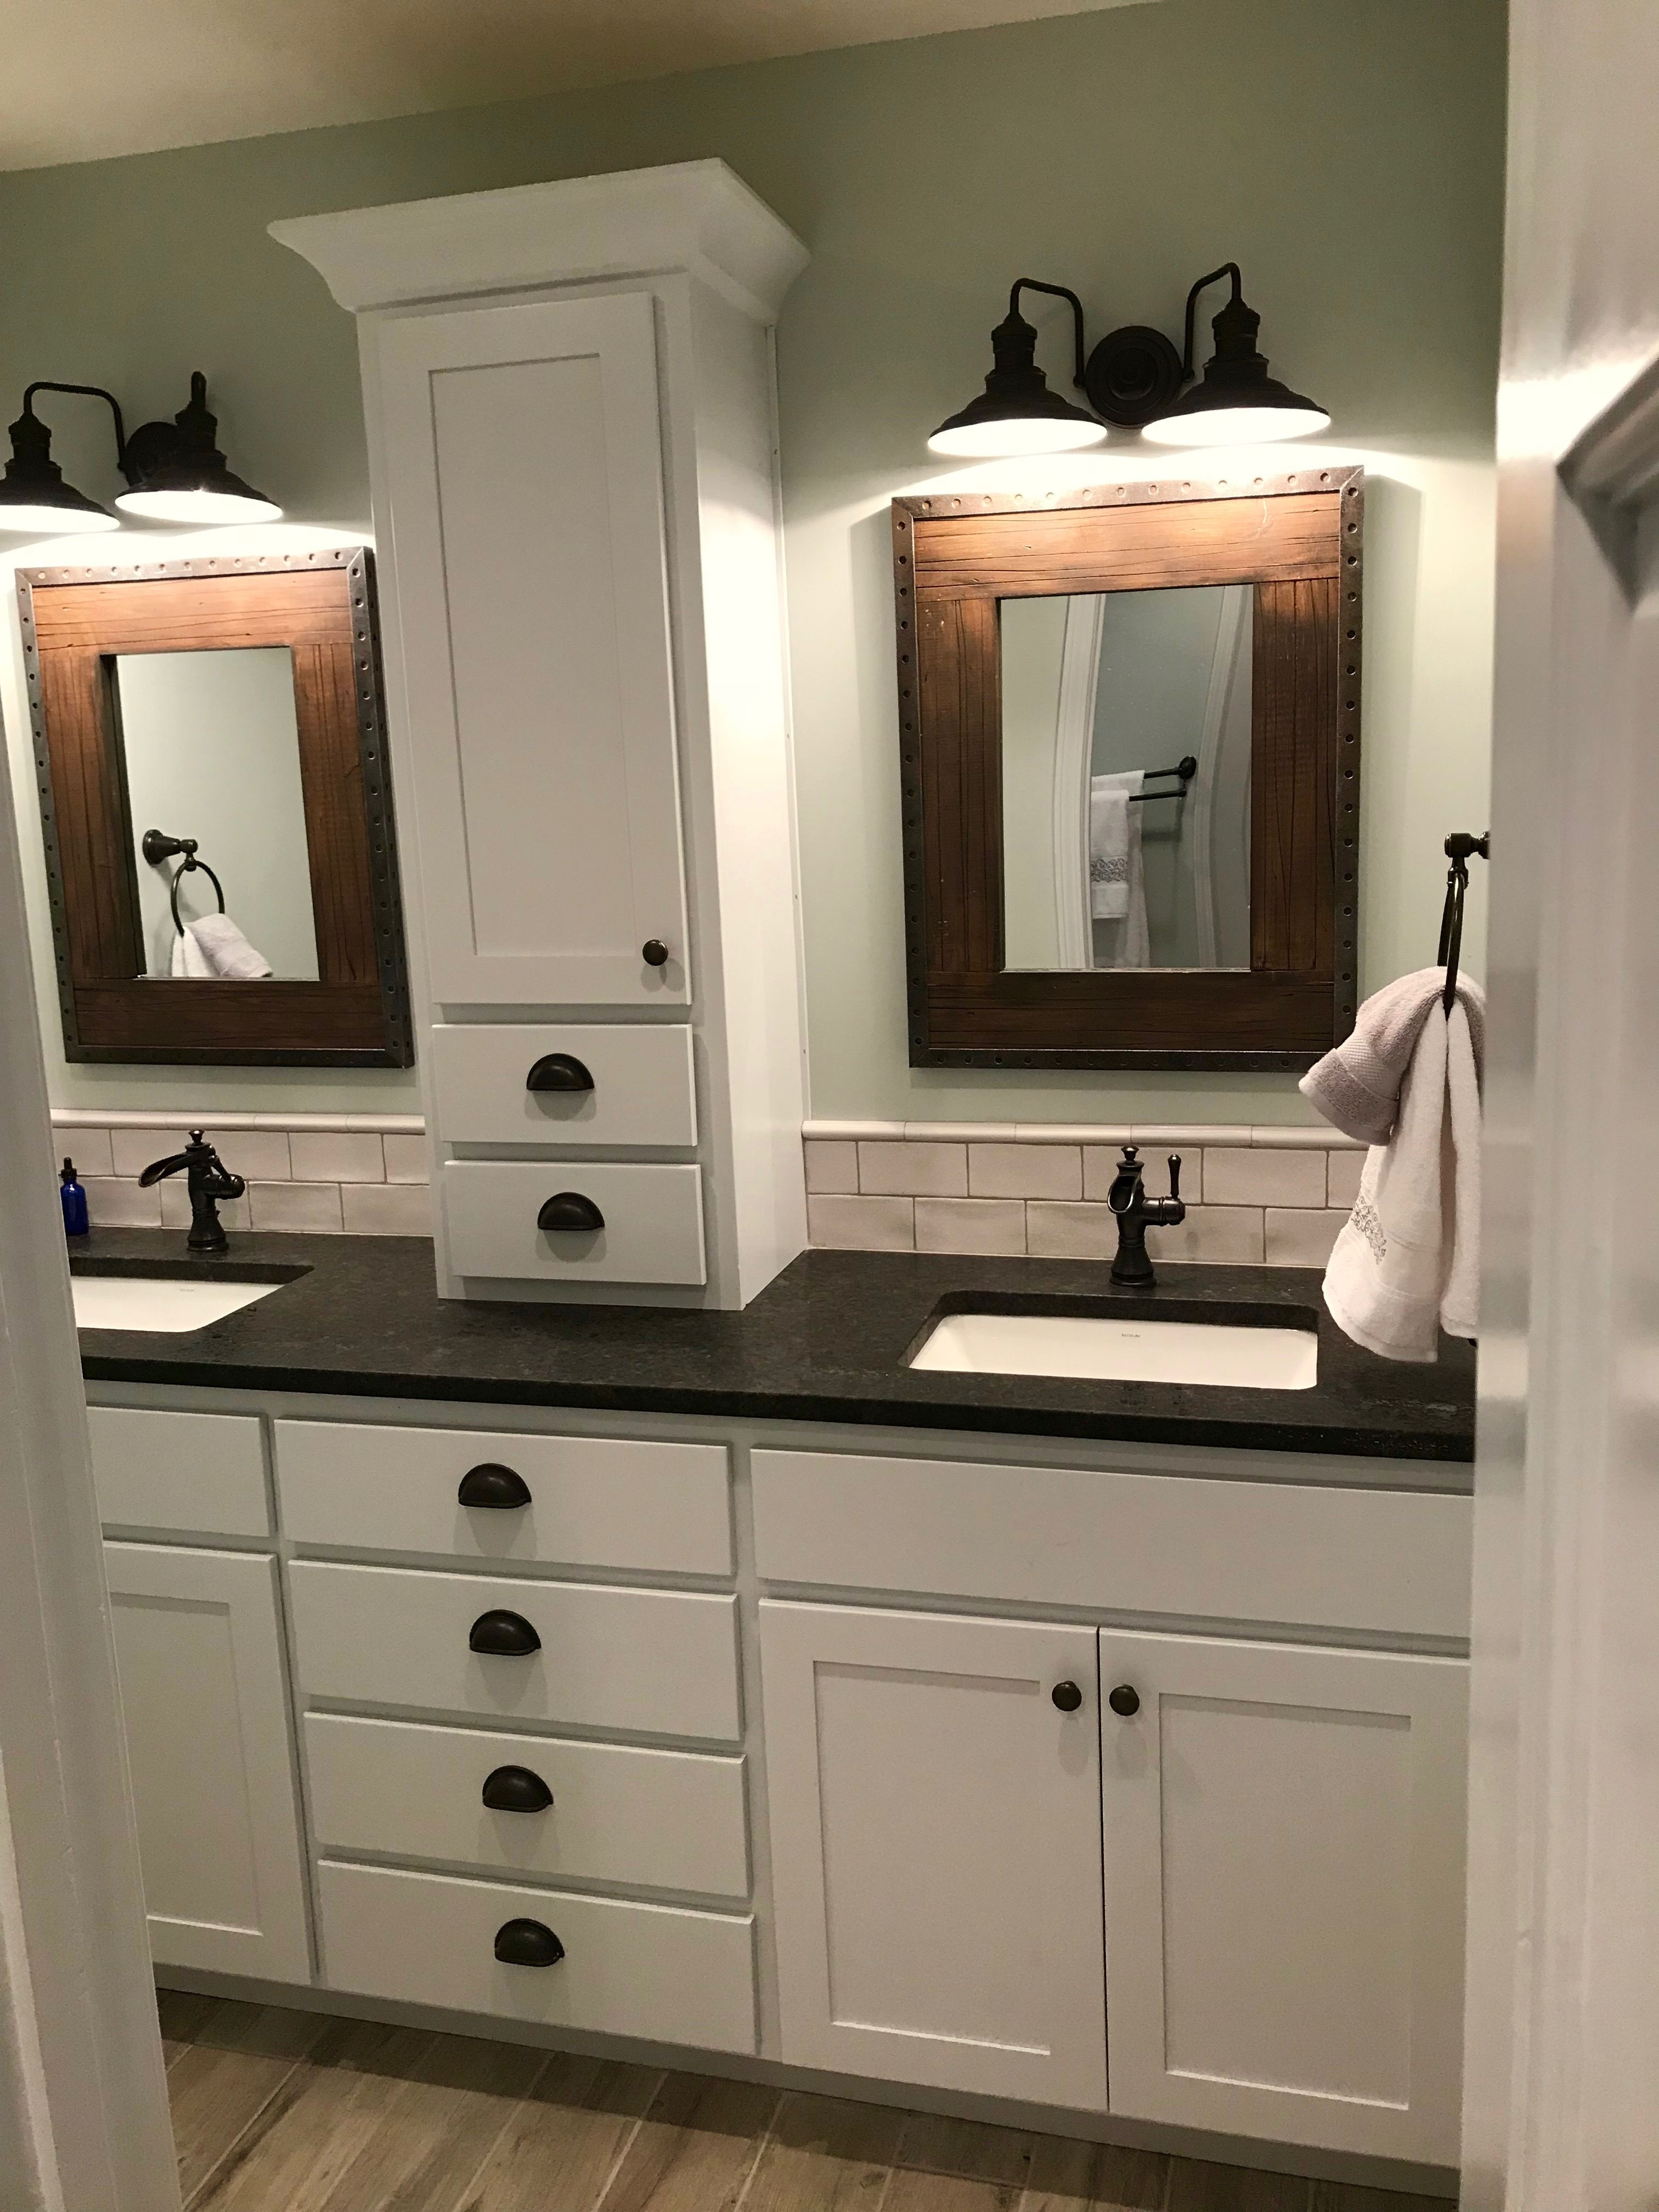 Cabinet Storage Reno 2019 In 2019 Bathroom Wall Cabinets in sizing 3024 X 4032